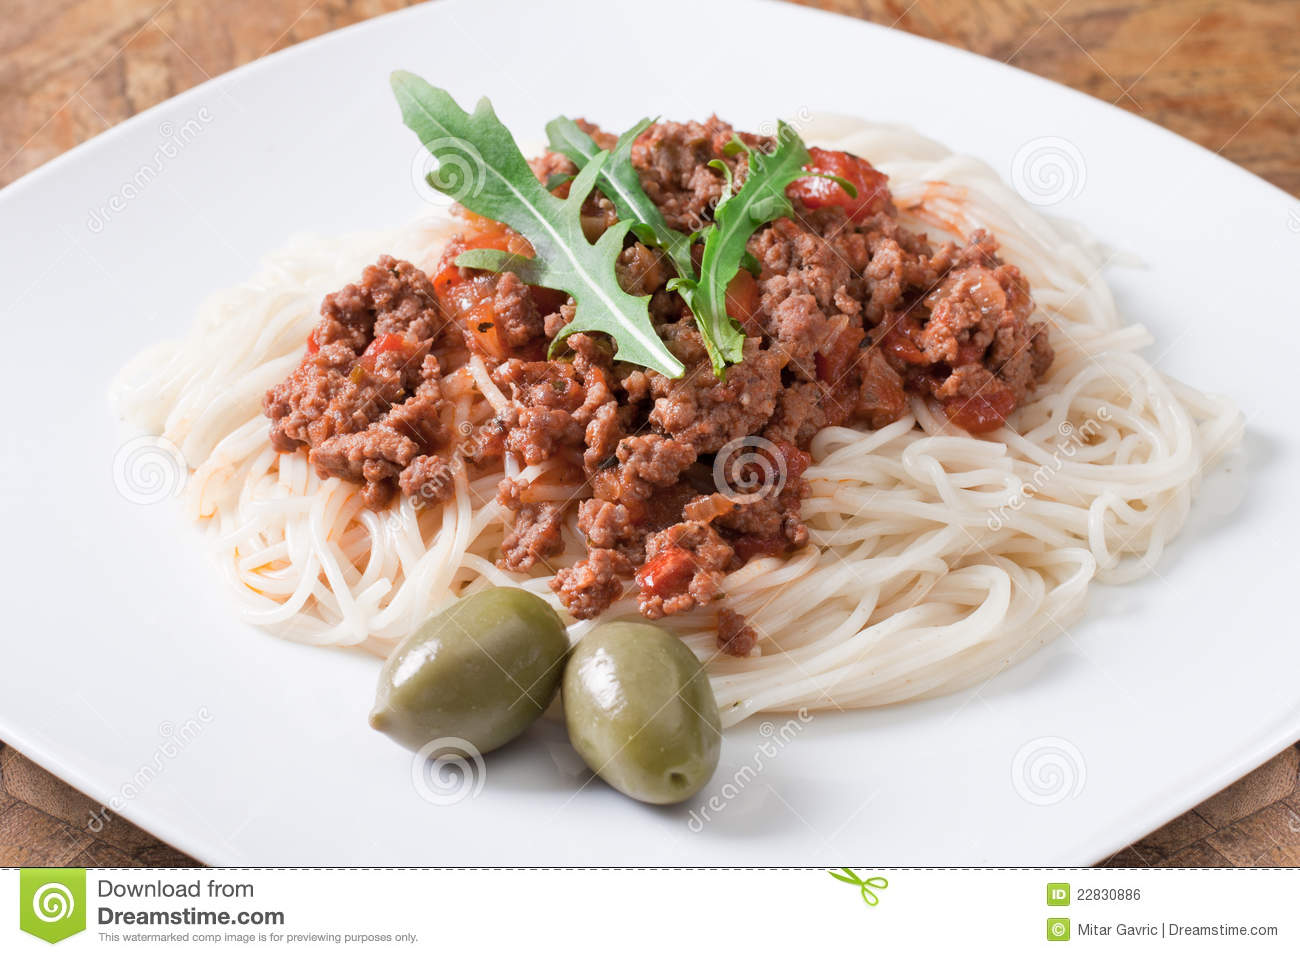 Spaghetti Alla Bolognese Royalty Free Stock Image - Image: 22830886